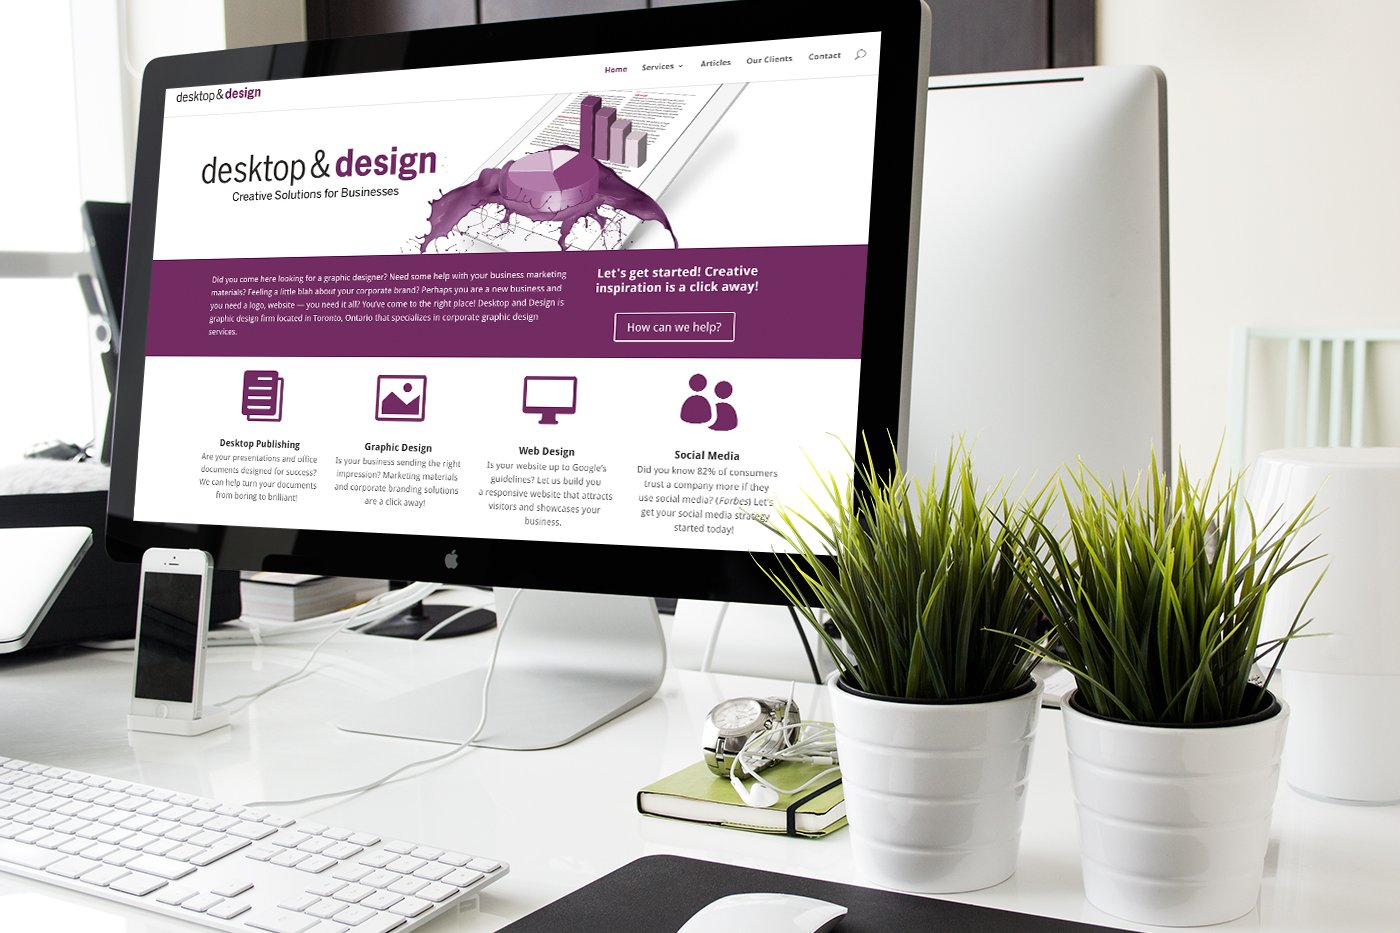 Desktop-and-Design-graphic-design-services-Toronto-Canada